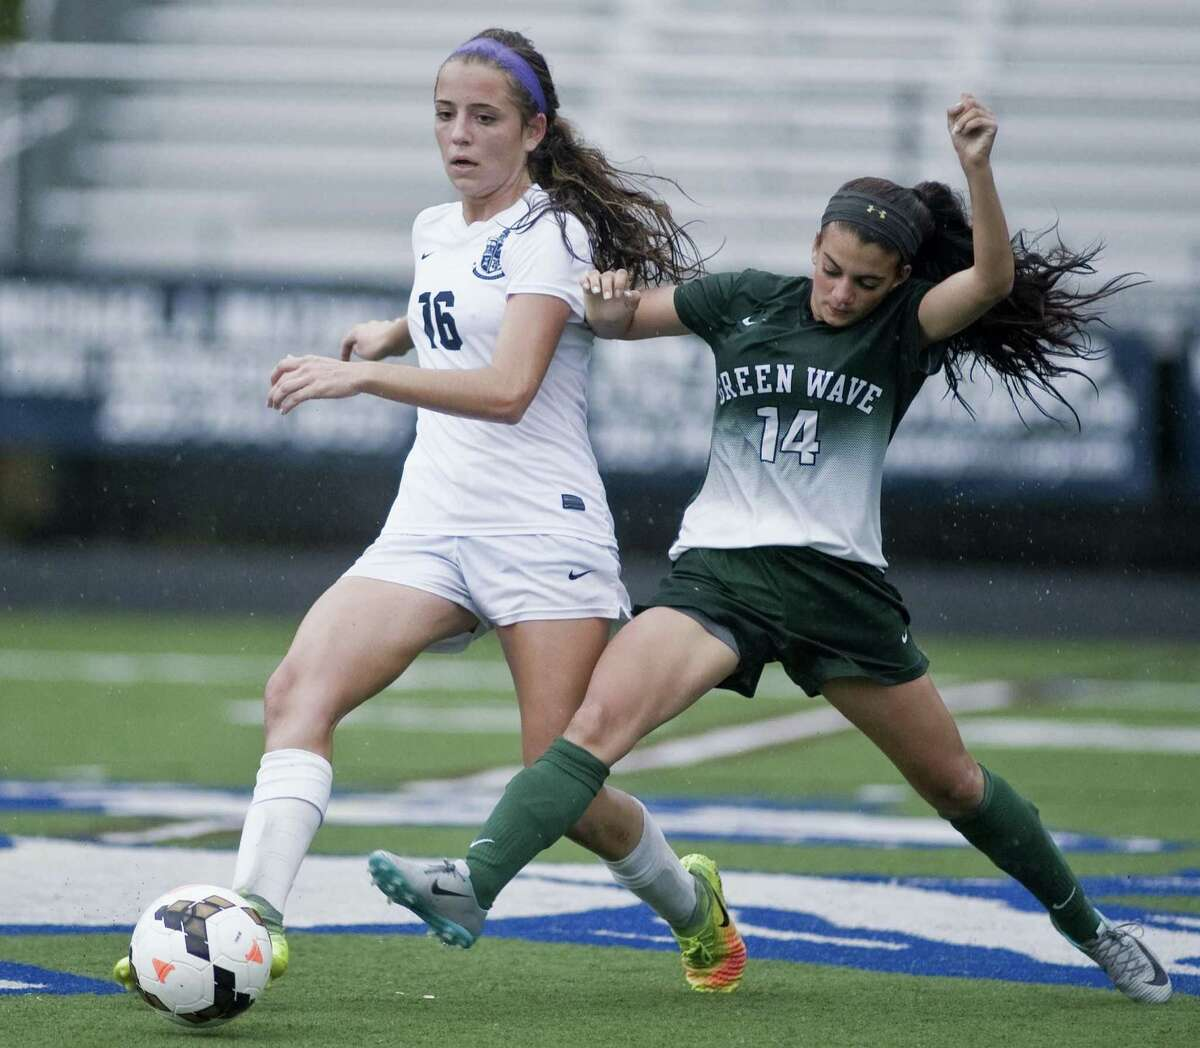 Immaculate High School's Kinsey Jarboe tries to keep the ball away from New Milford High School's Adriana Alfano in a game played at Immaculate. Tuesday, Sept. 19, 2017